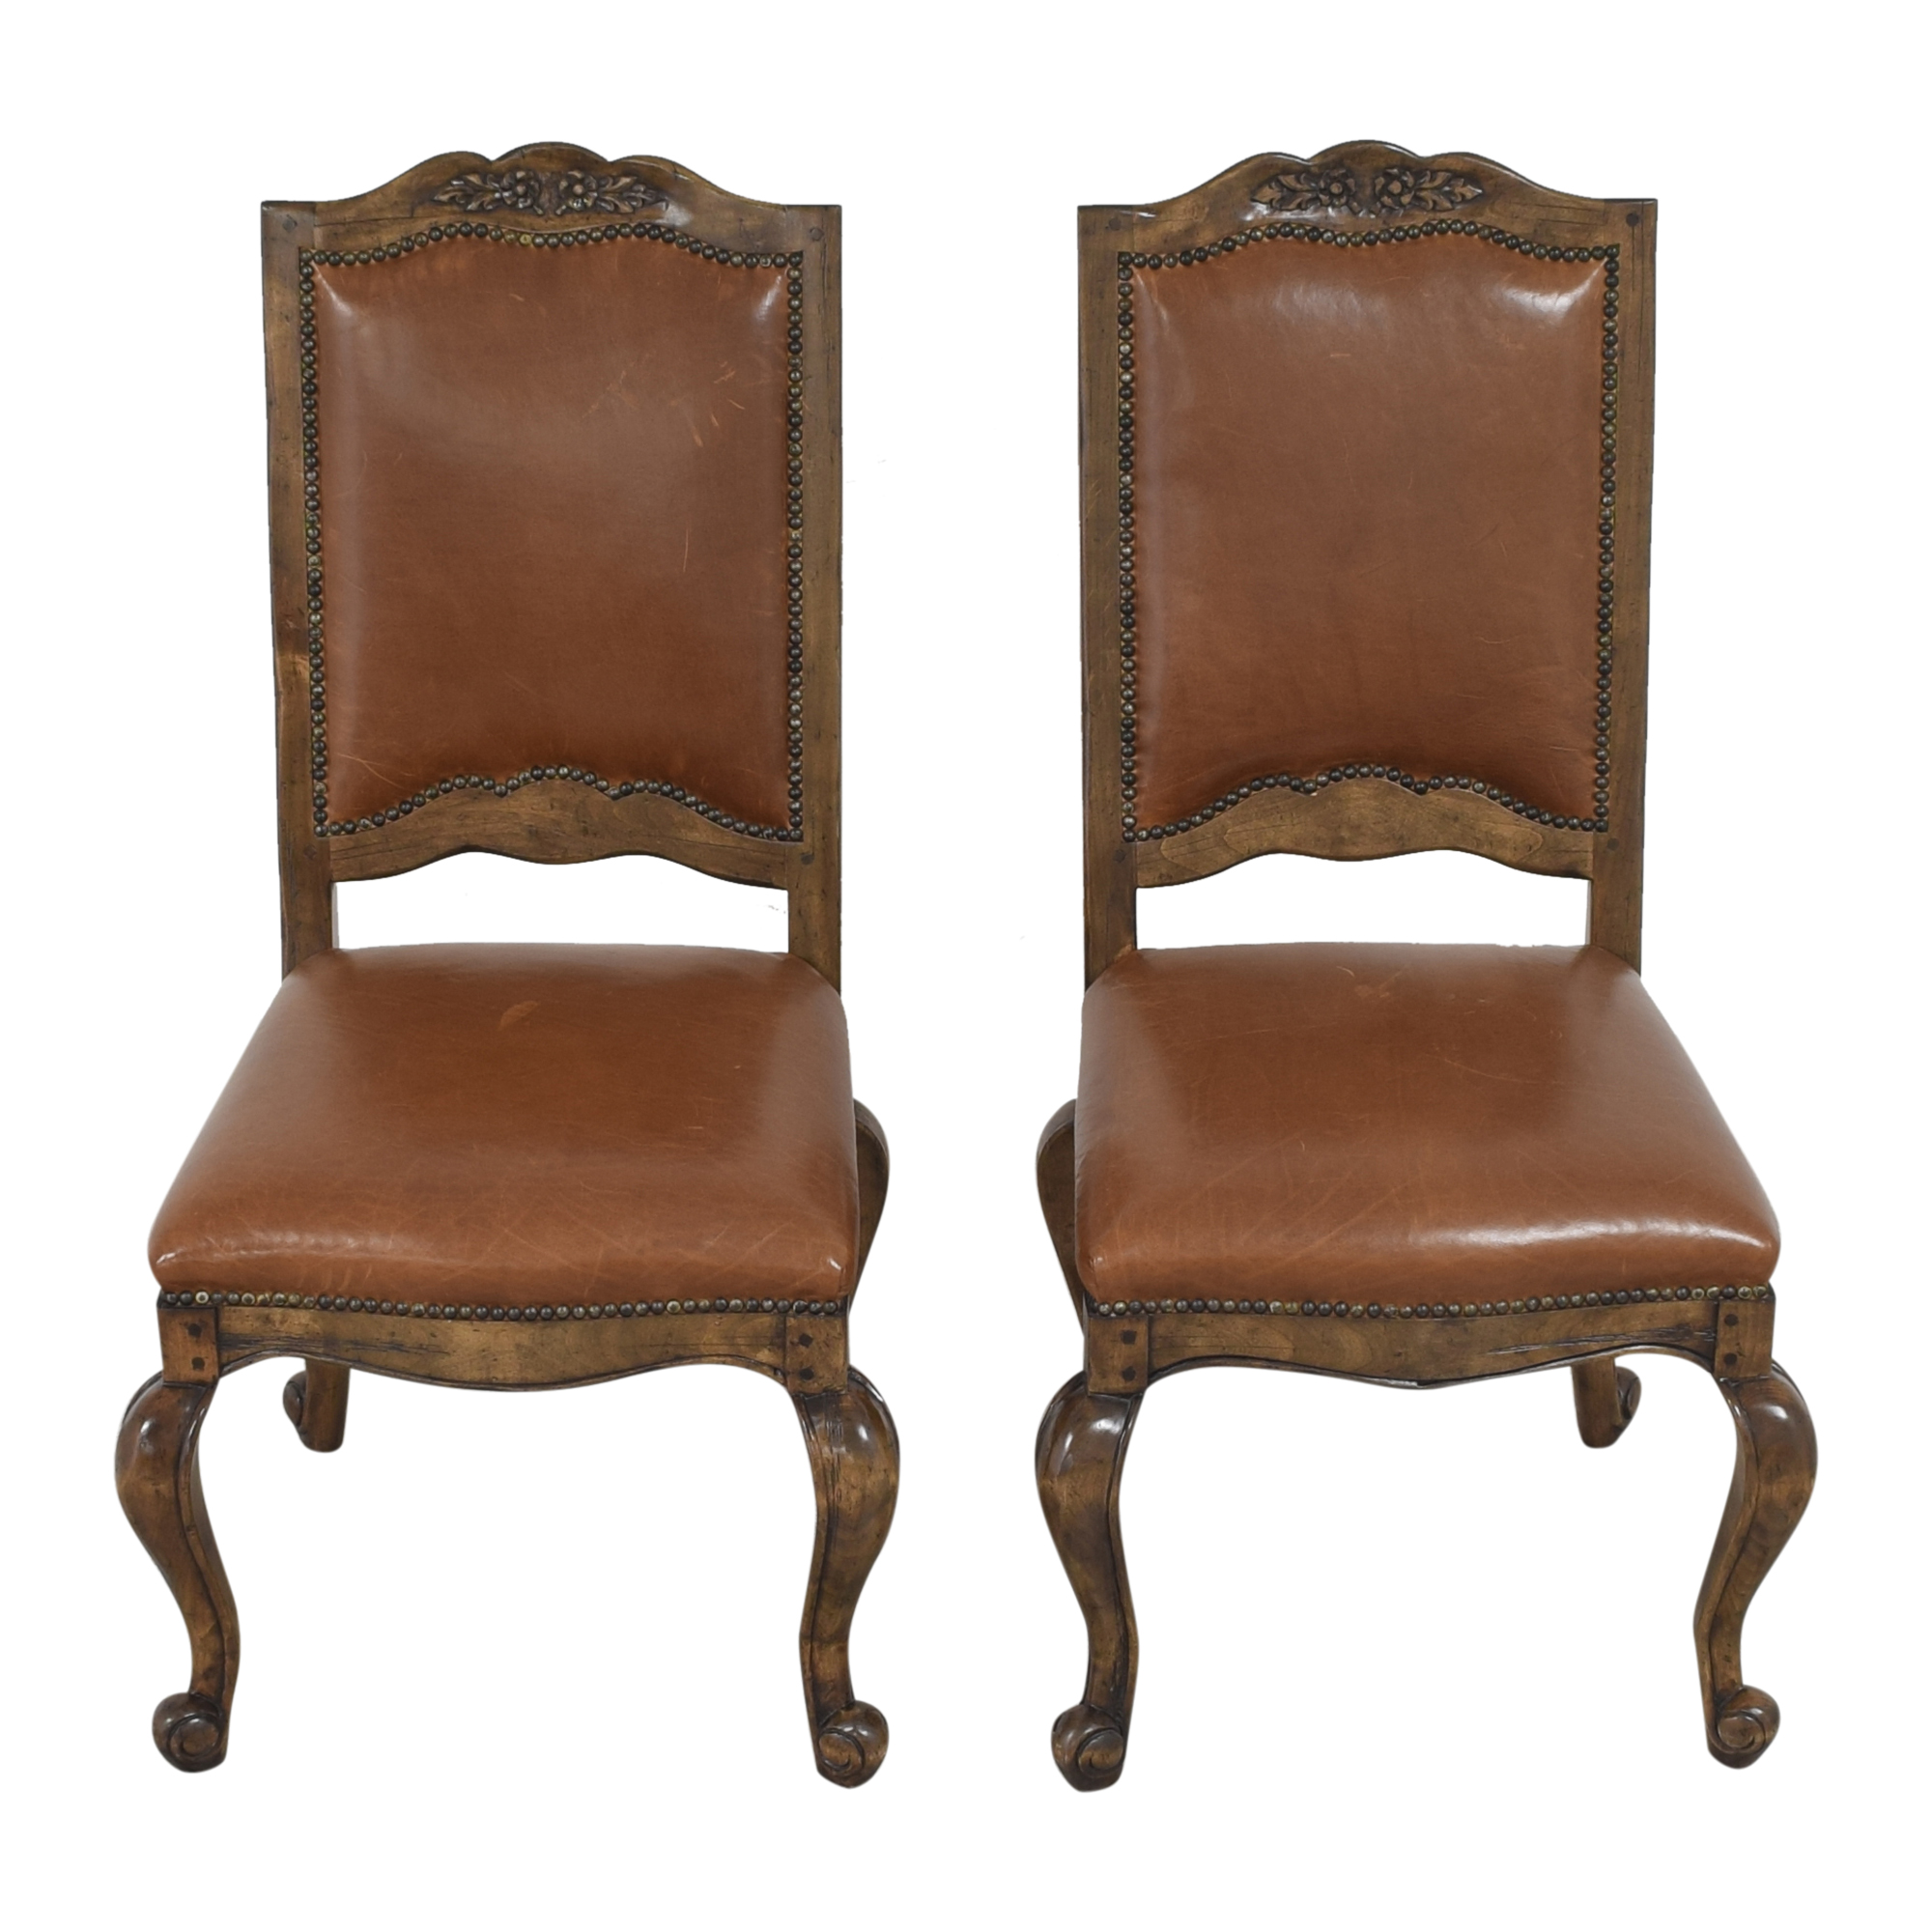 Cabriole Dining Chairs multi